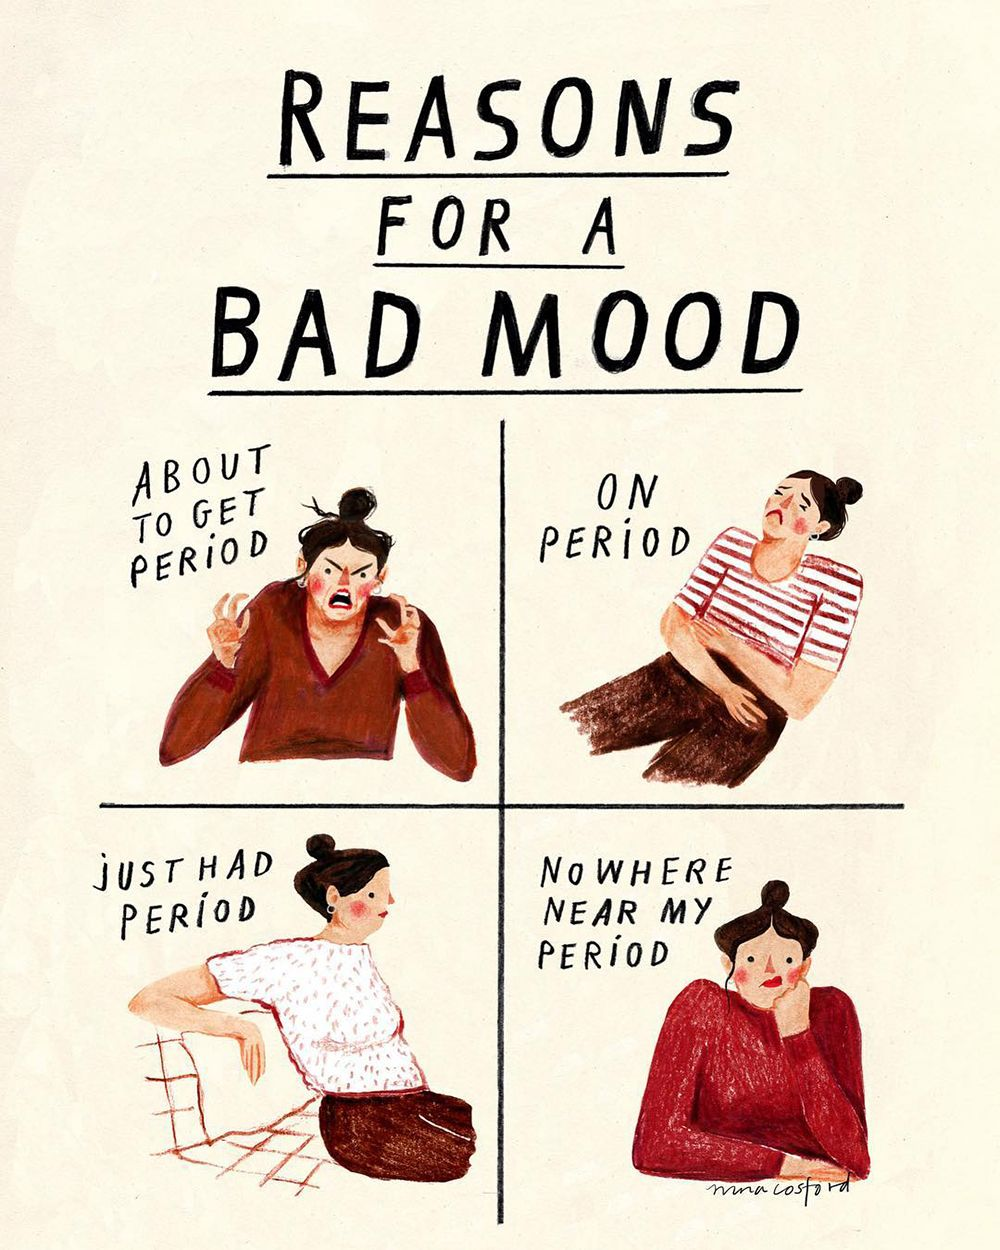 Best Funny Girl Reasons for a Bad Mood | A Cup of Jo Bad Mood Comic Nina Cosford 11